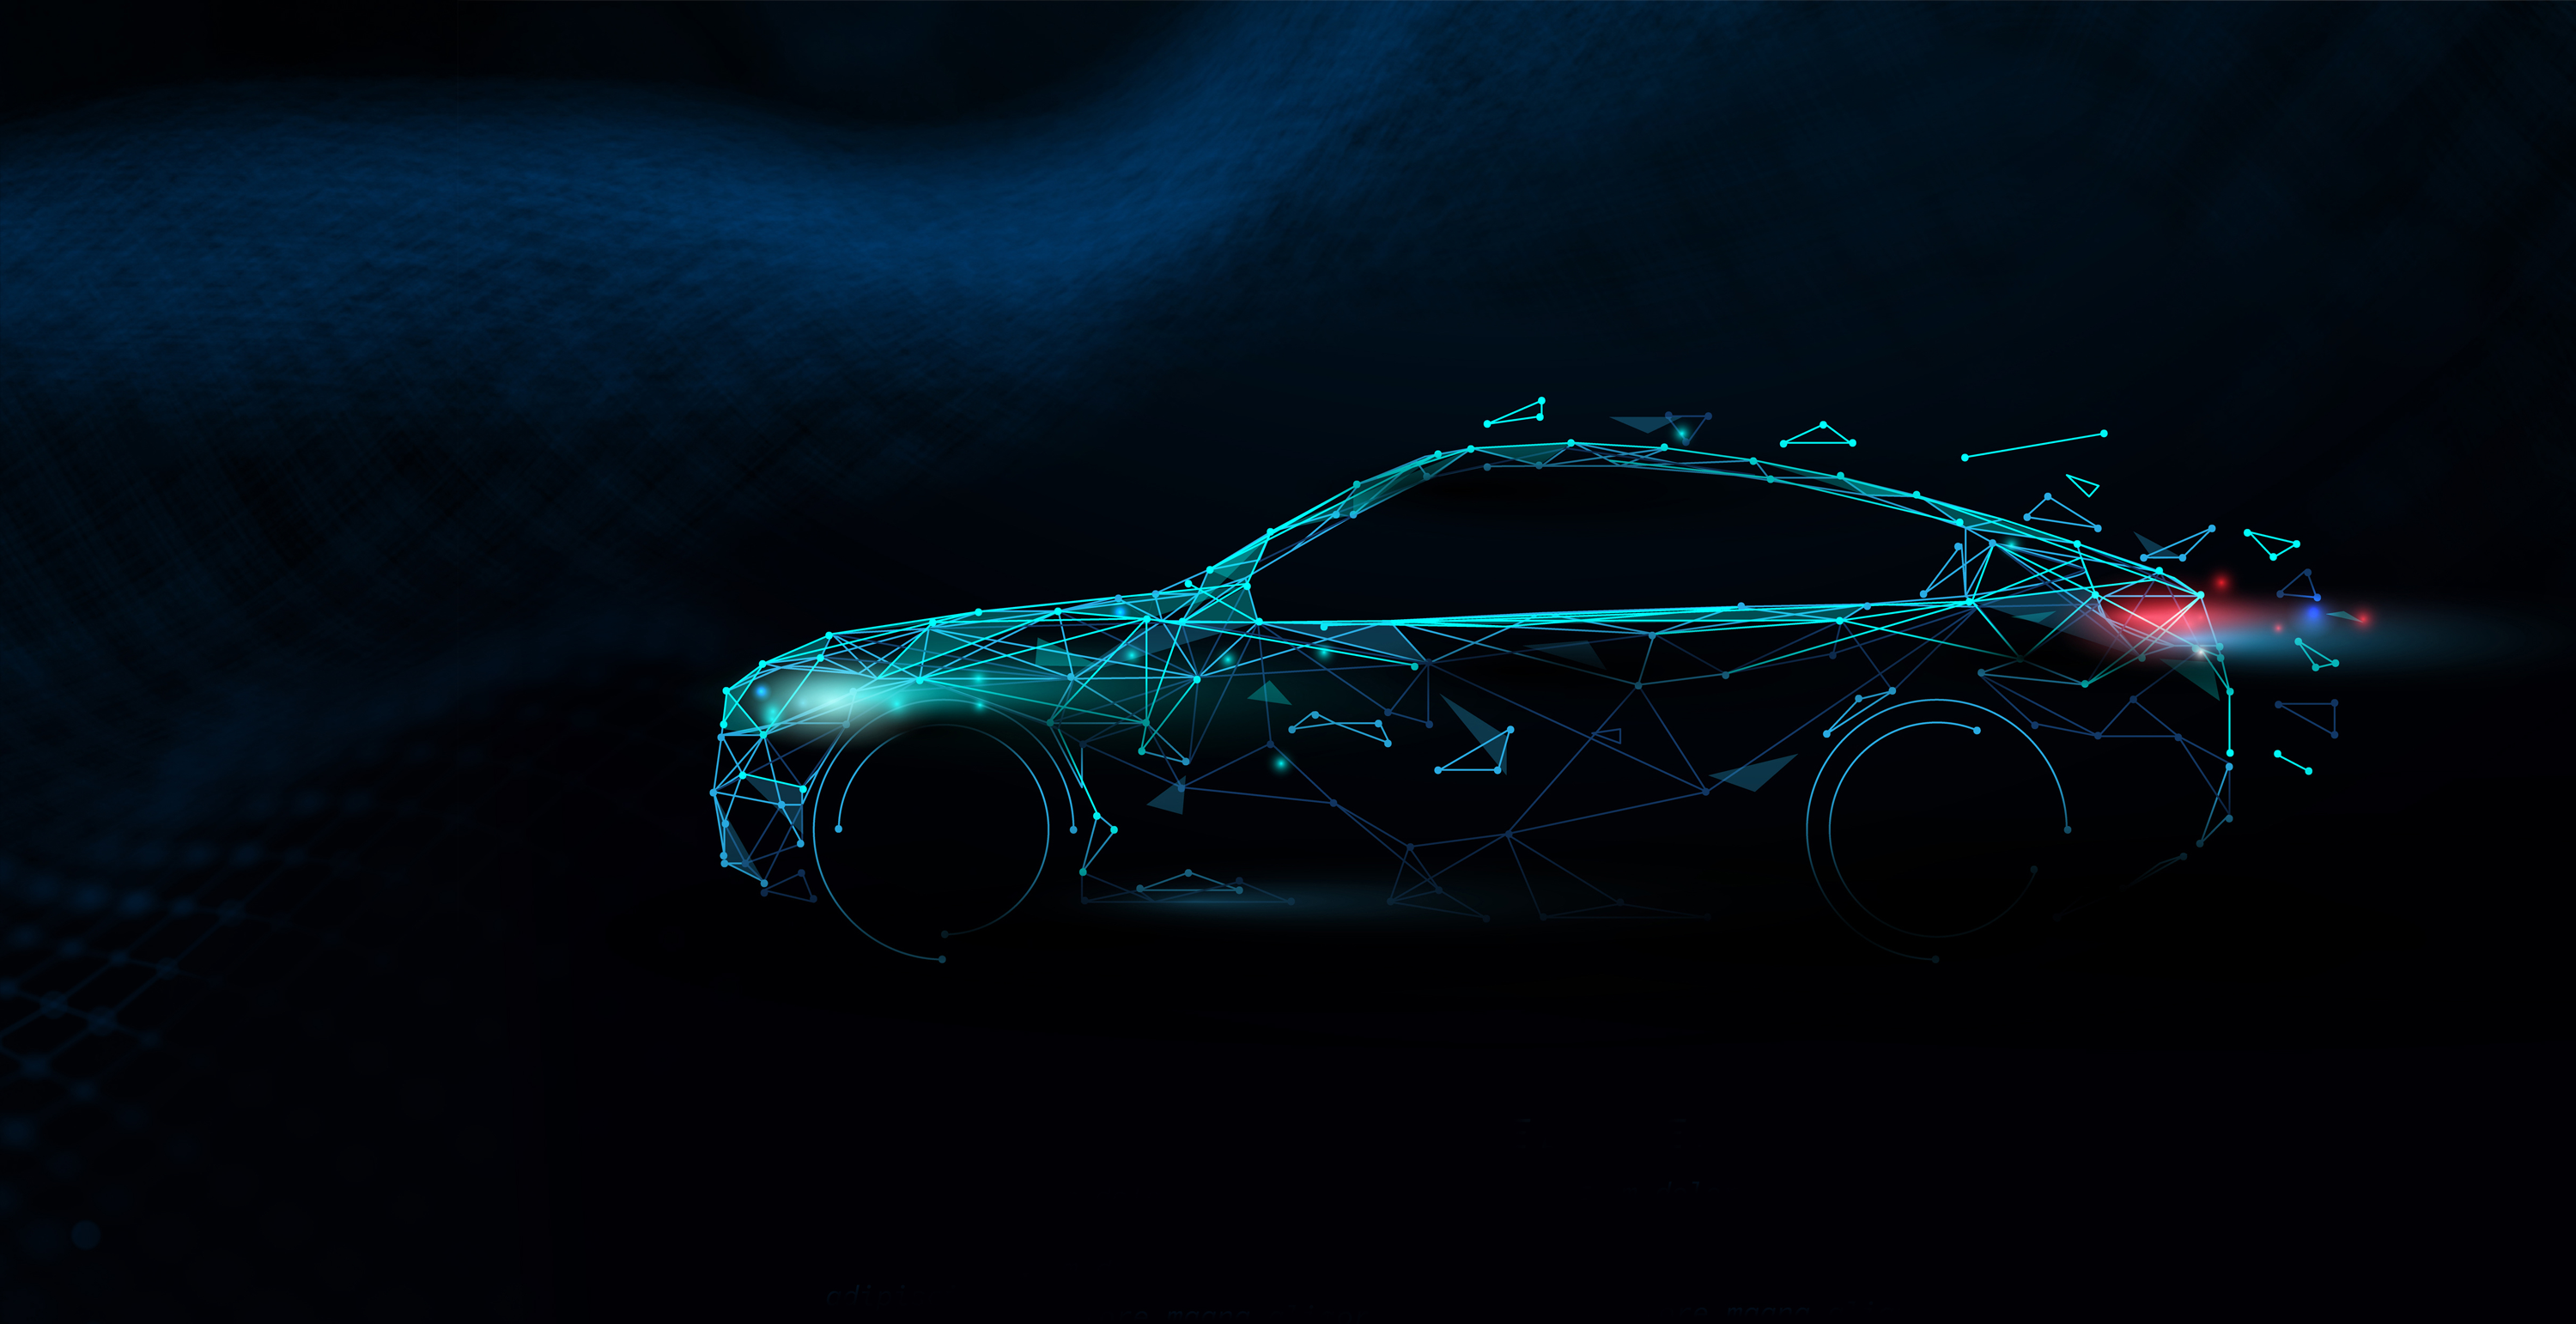 2021_US_AUTO_NADA-Show_Page-Background_V2